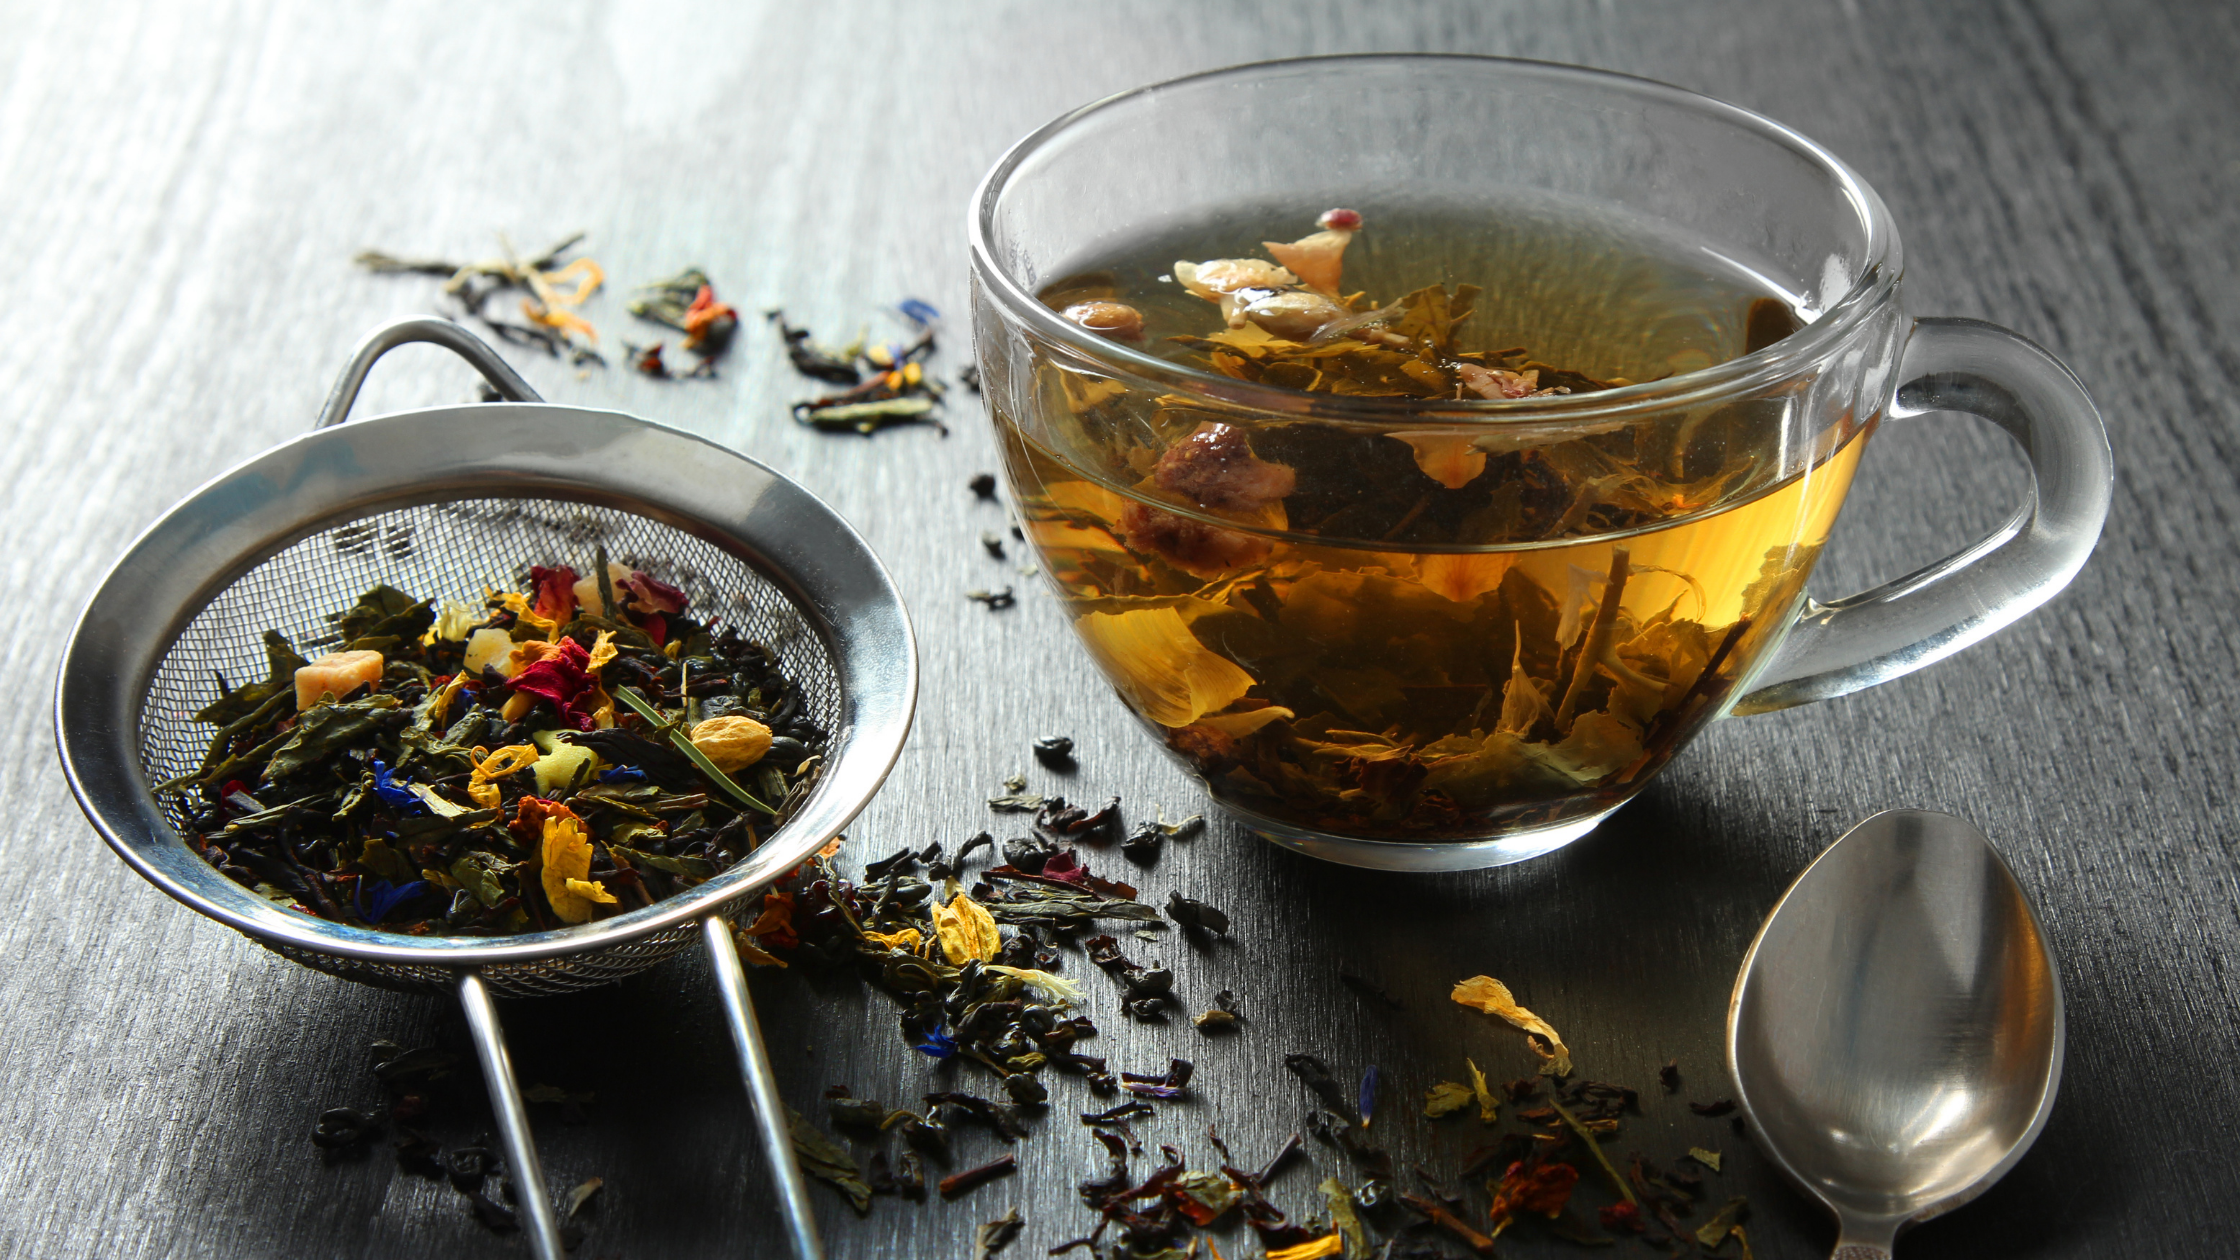 Glass cup with herbal tea in, popular galactagogues are in a metal strainer and scattered across a grey kitchen surface.